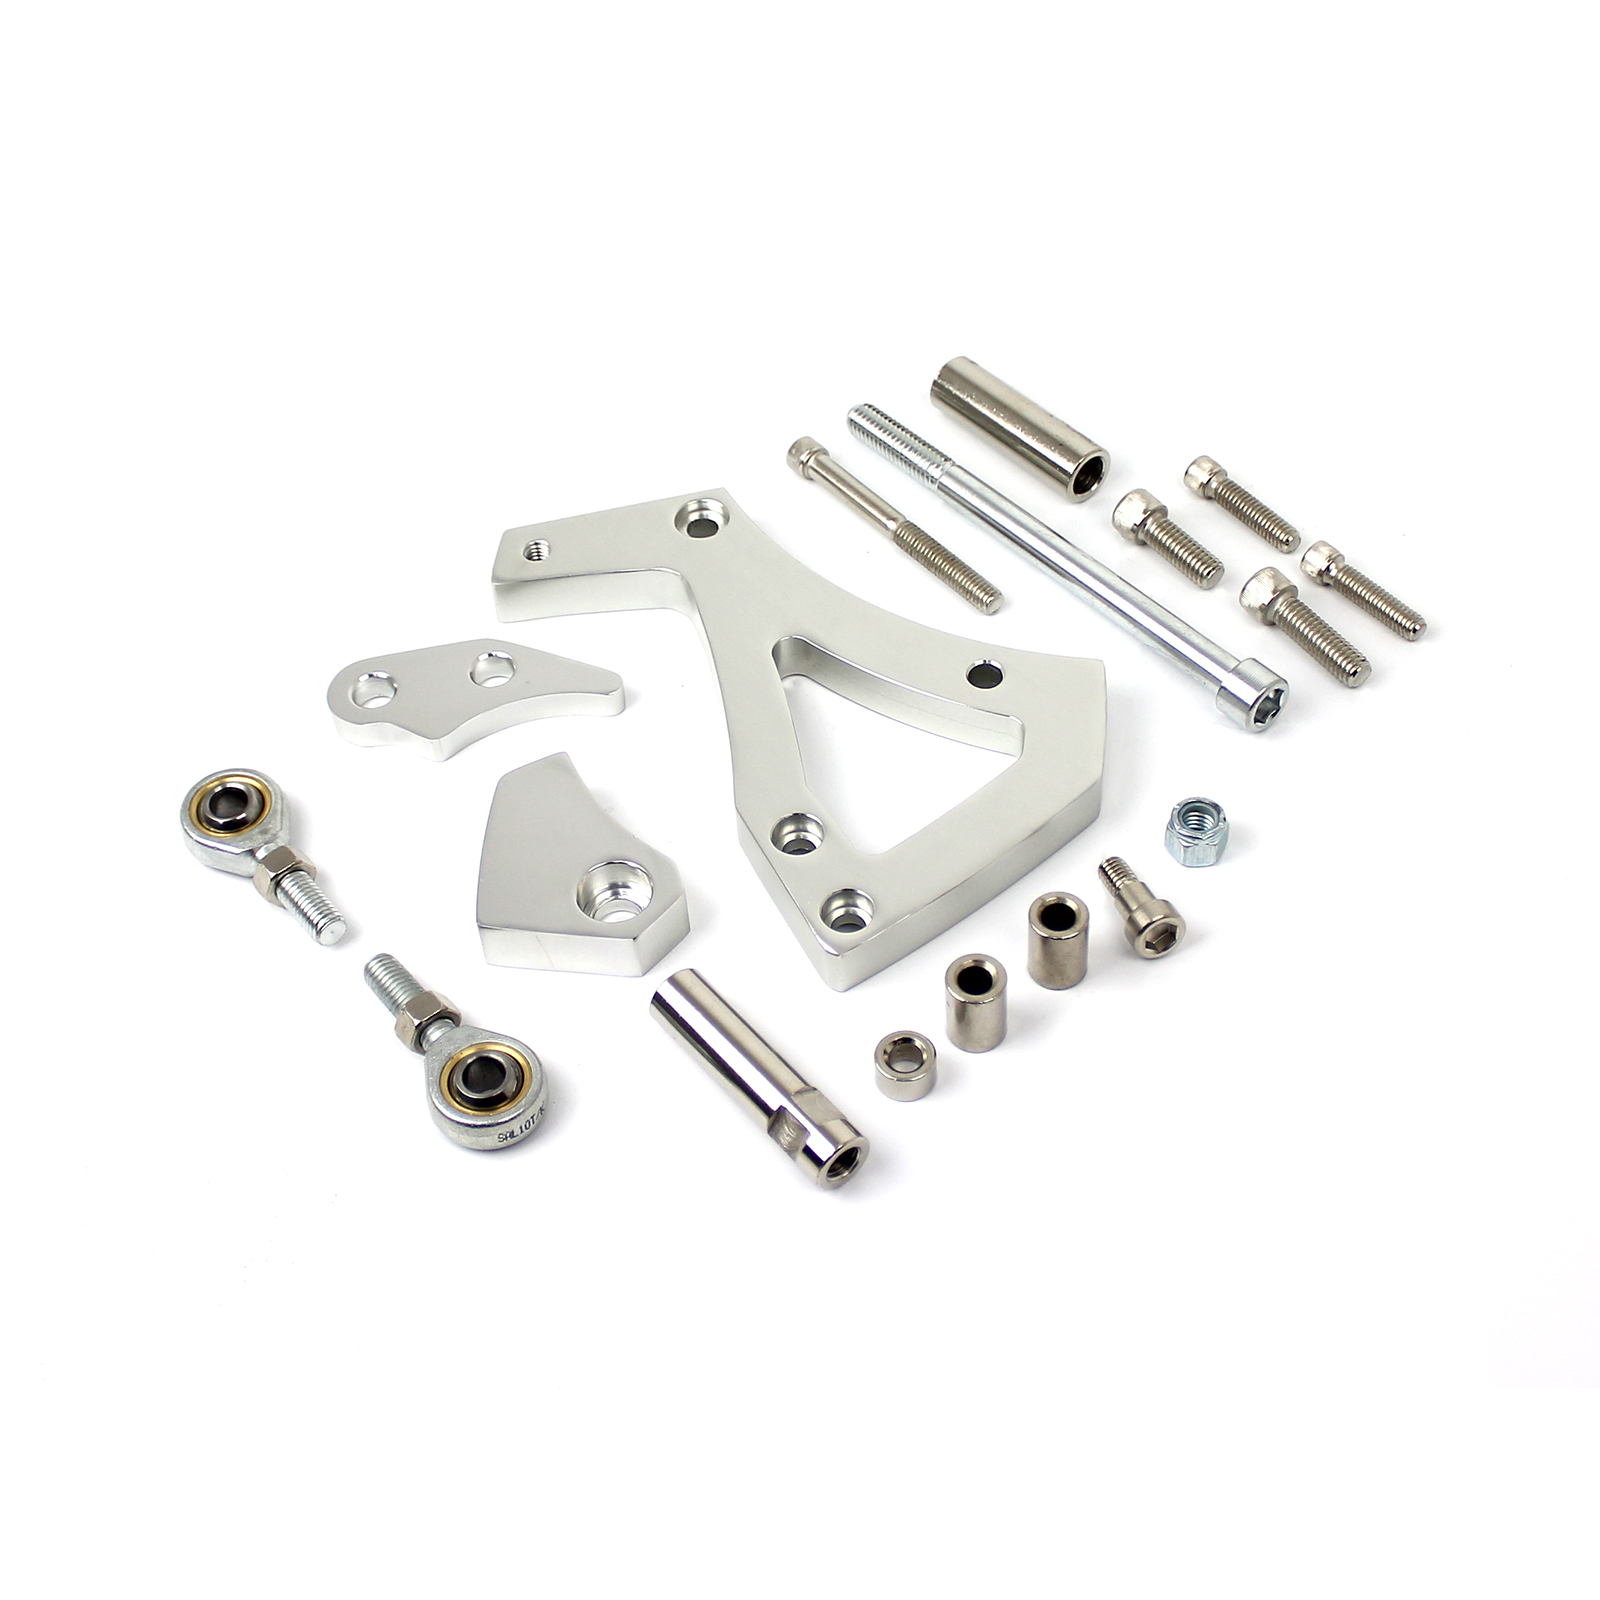 Ford 302 351C Cleveland Aluminum Alternator Bracket Kit Polished